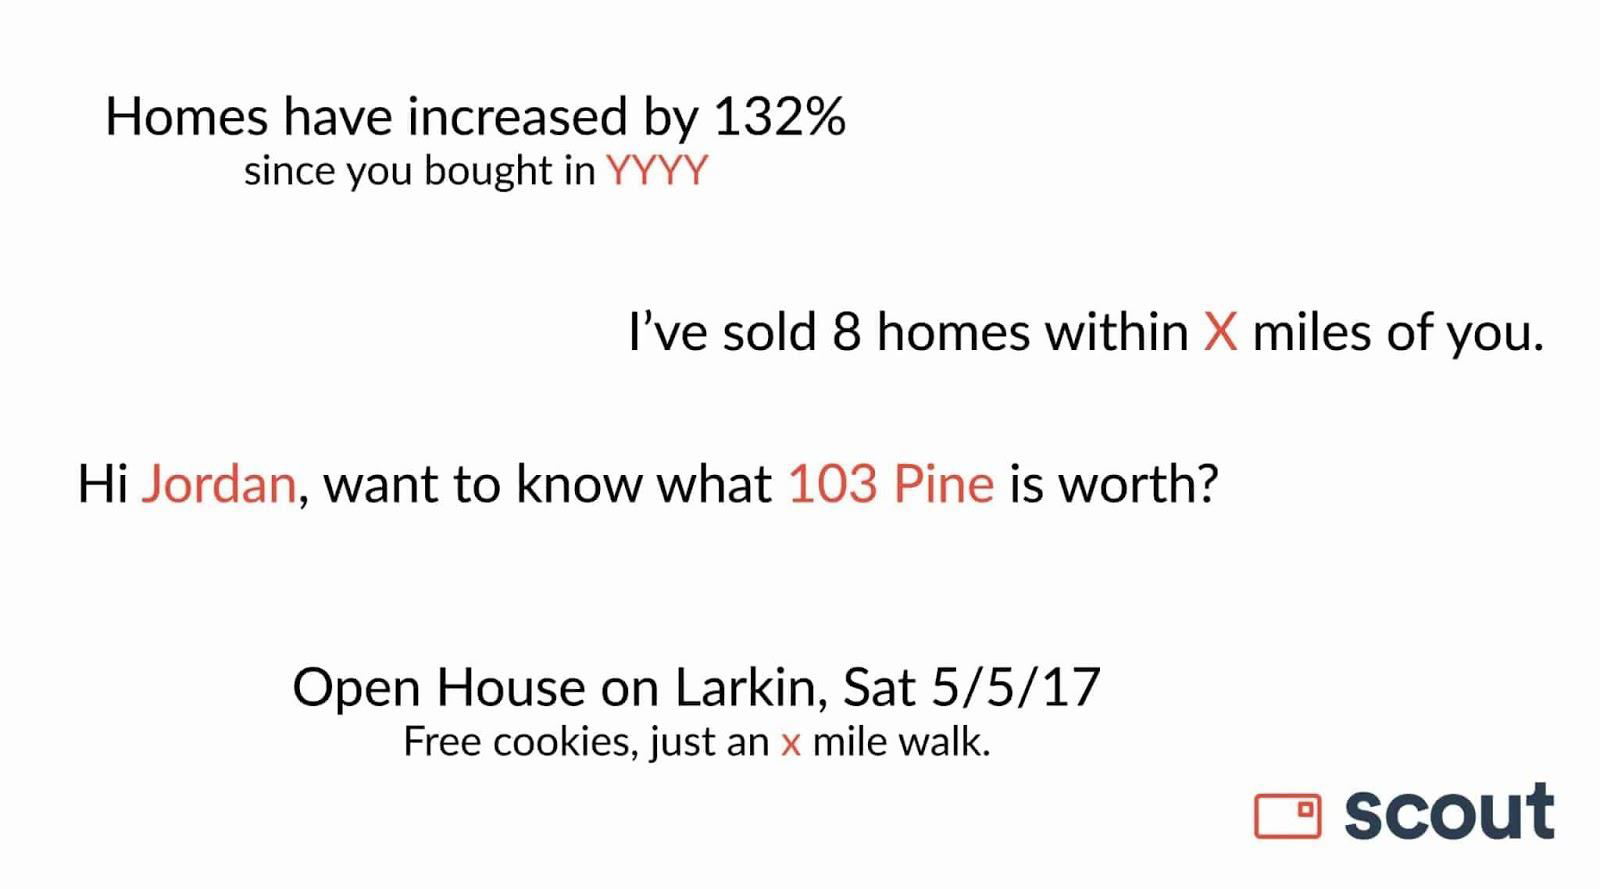 Scout real estate postcard with variables highlighted in red.